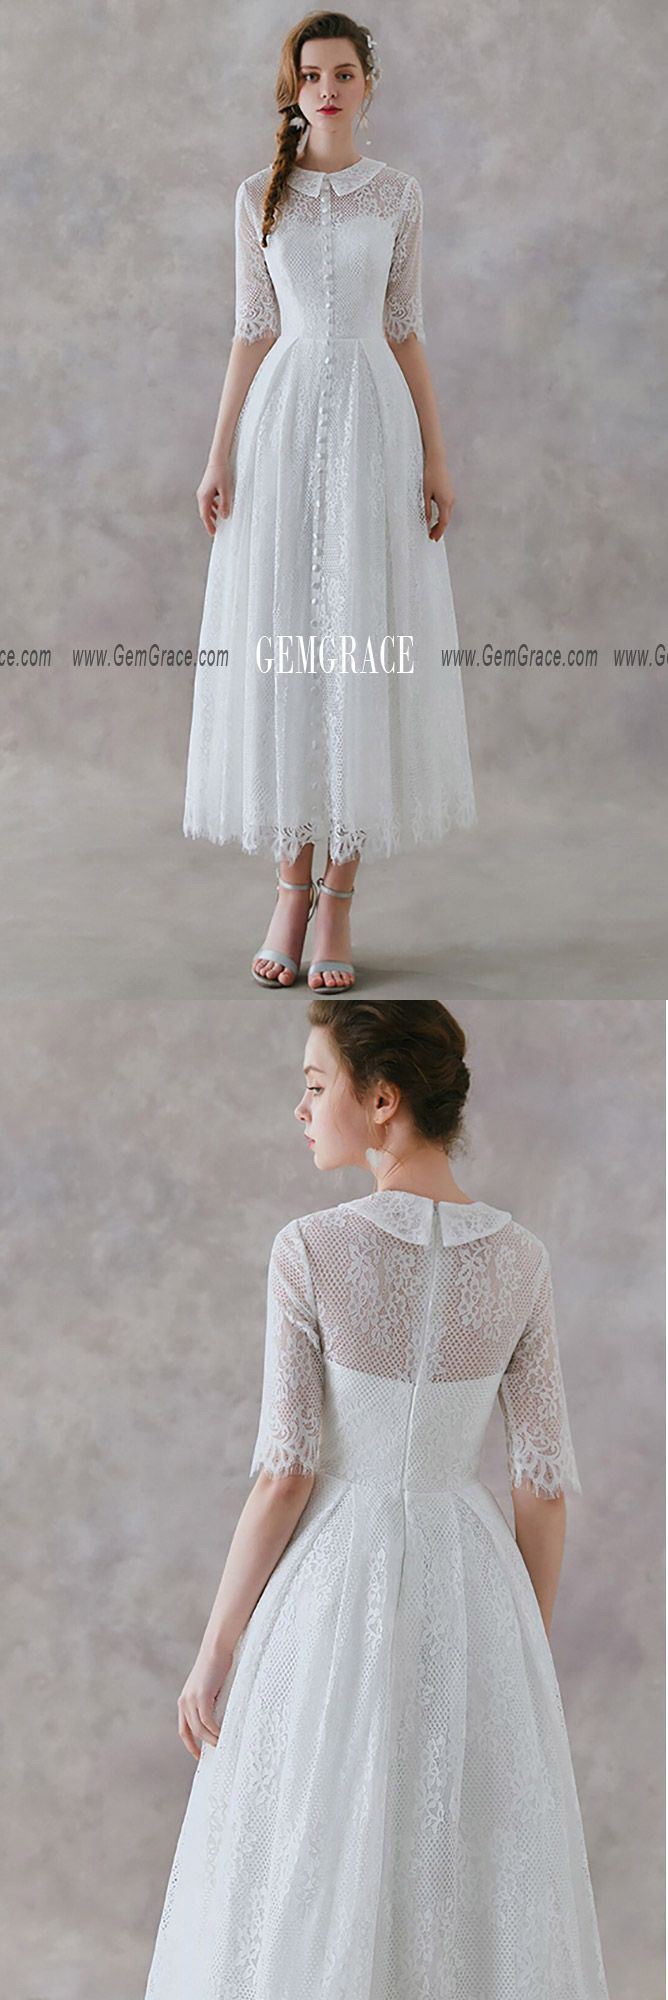 French Vintage Lace Tea Length Wedding Dress With Collar Half Sleeves #YS602 at …